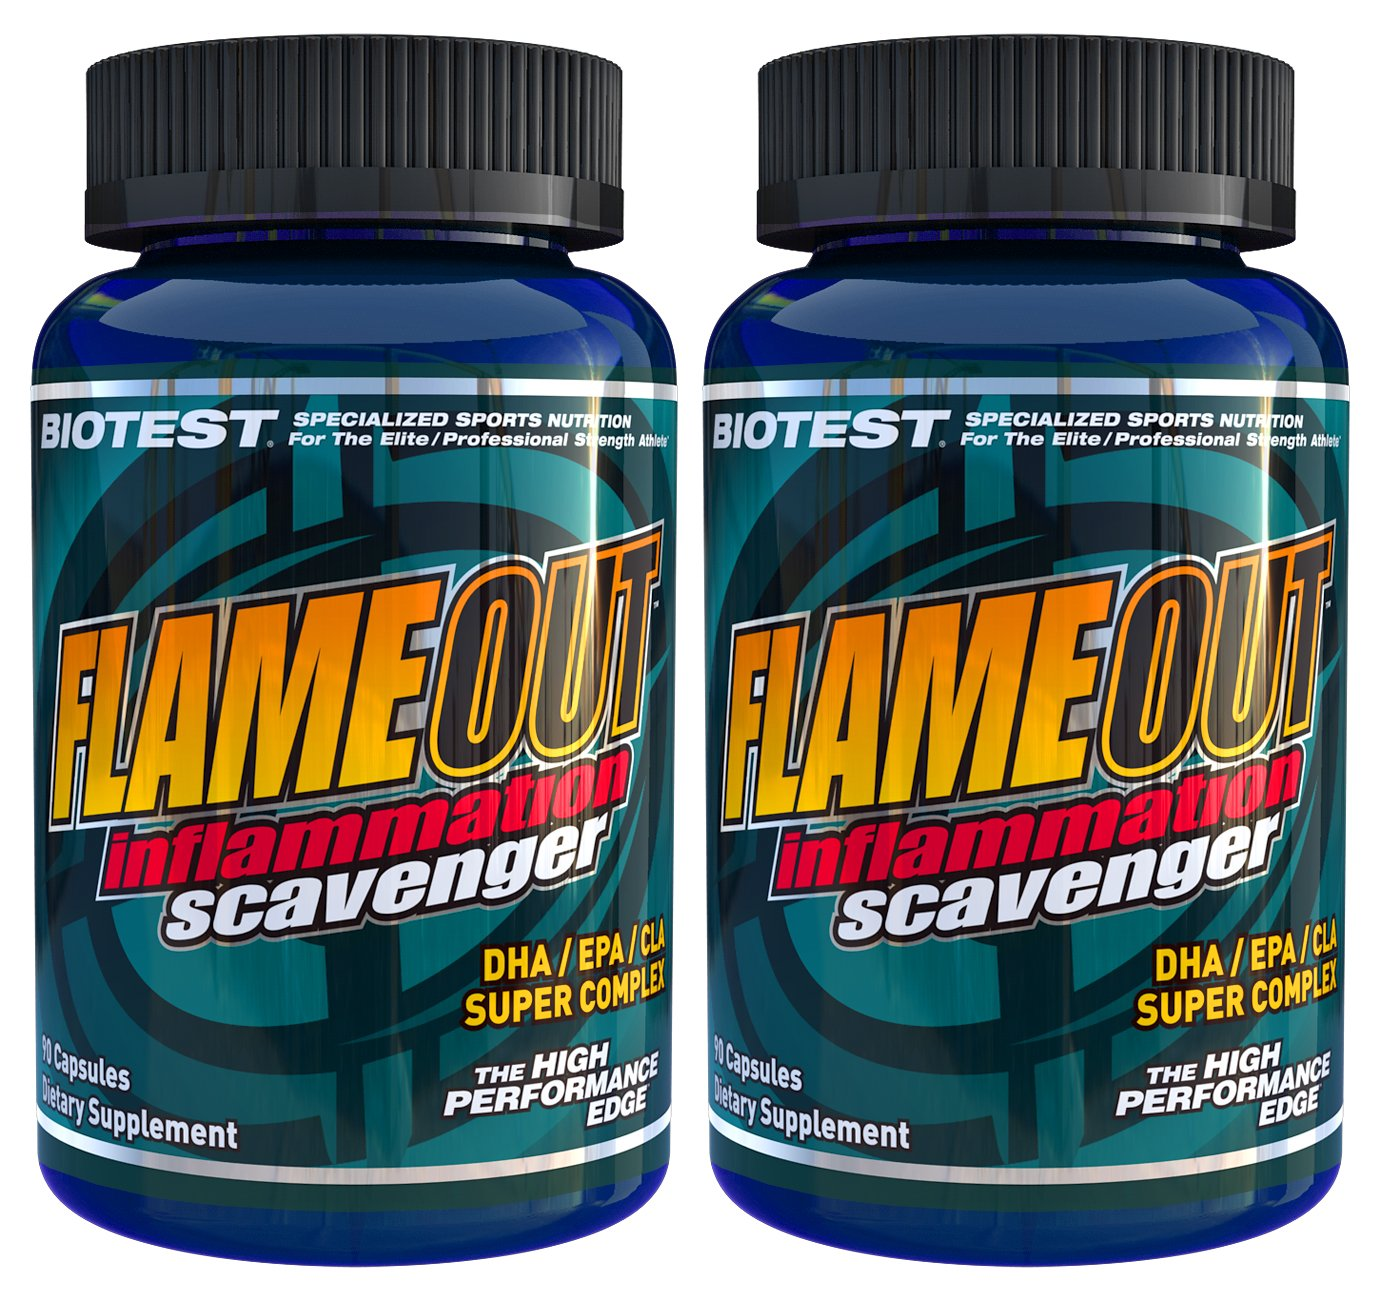 Flameout® Omega-3 Fish Oil, 2 Pack (180 Softgels) by Biotest (Image #1)